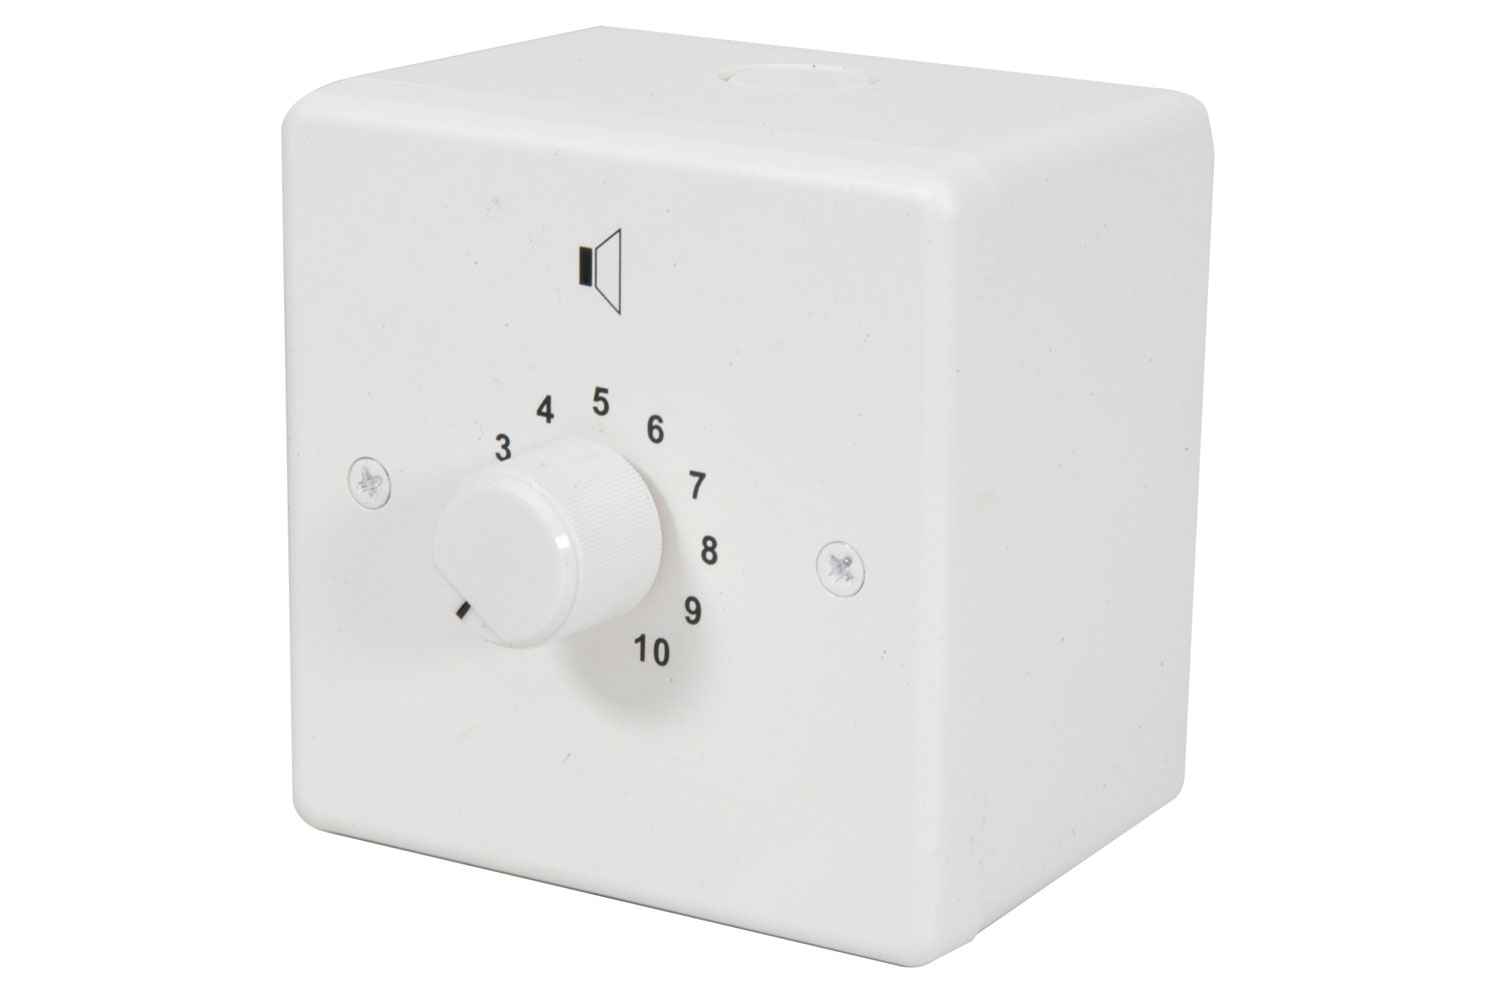 100v Volume Control Switch 50W Image | Metro Solutions